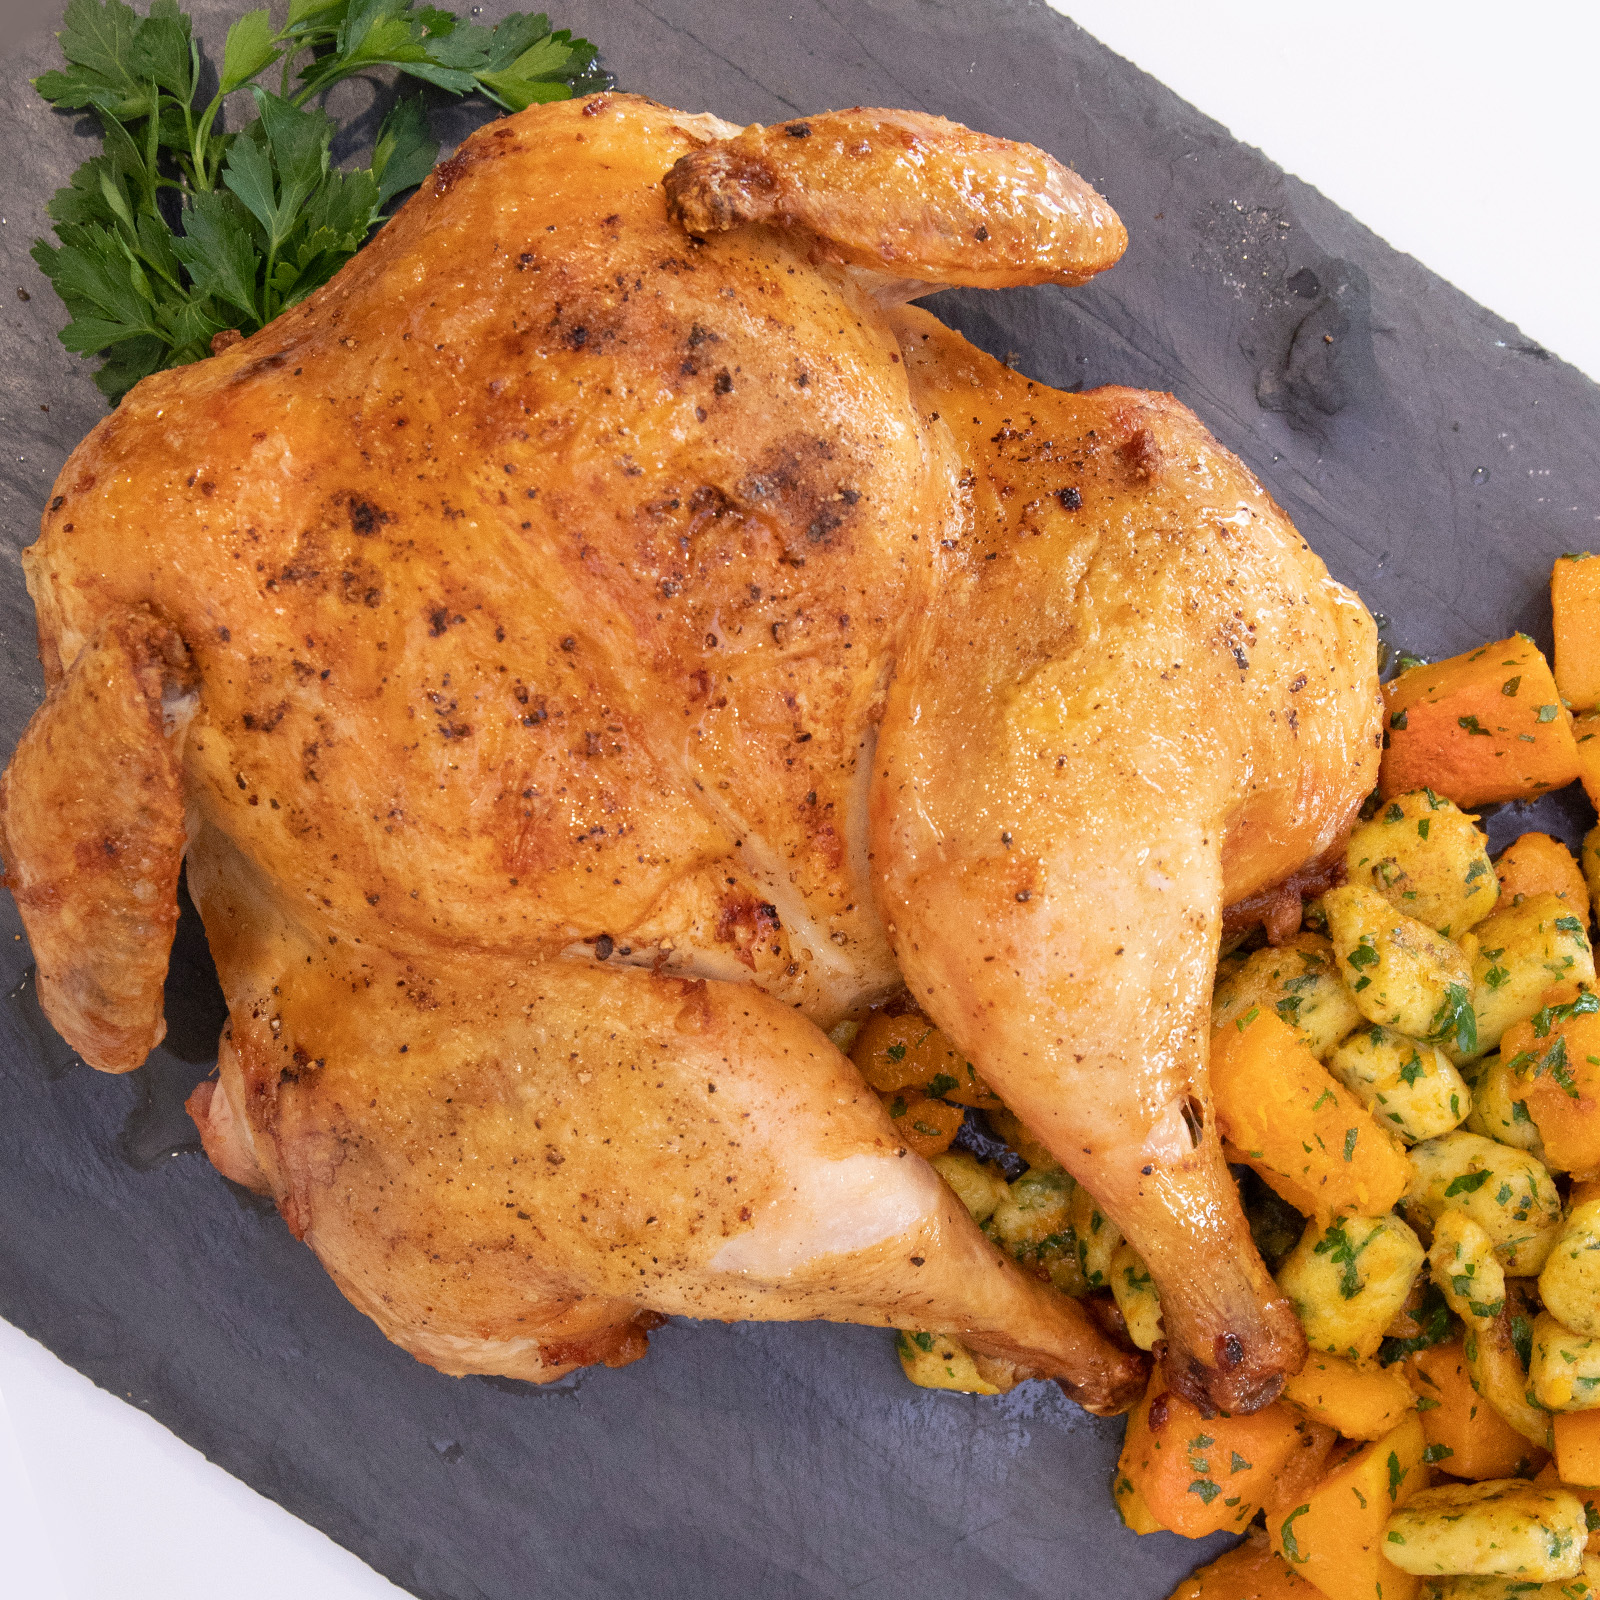 Roasted Whole Chicken With Gluten-Free Parisian Gnocchi & Roasted Winter Squash